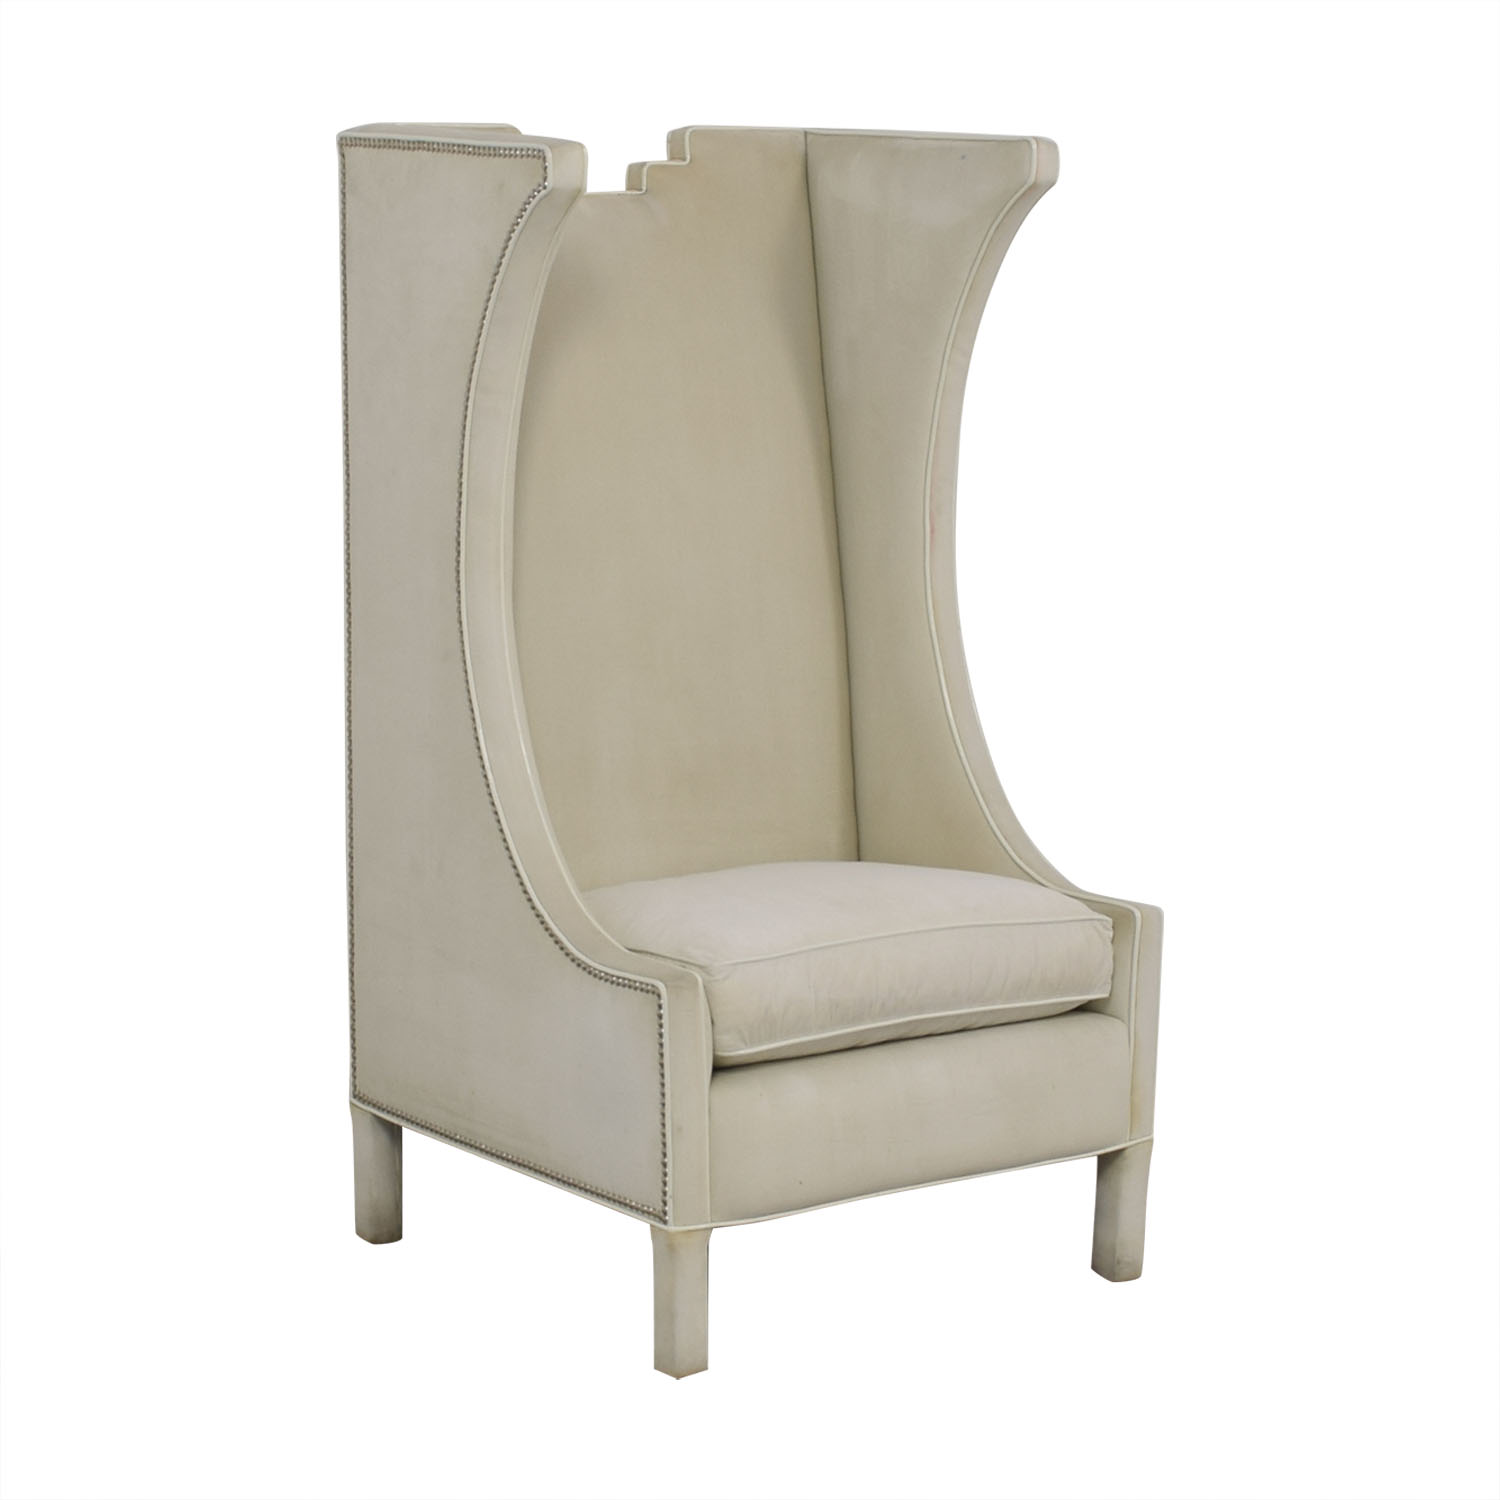 Sensational 85 Off Shine By S H O Shine By S H O Lolita High Chair Cotton Velvet And Leather Piping Chairs Dailytribune Chair Design For Home Dailytribuneorg